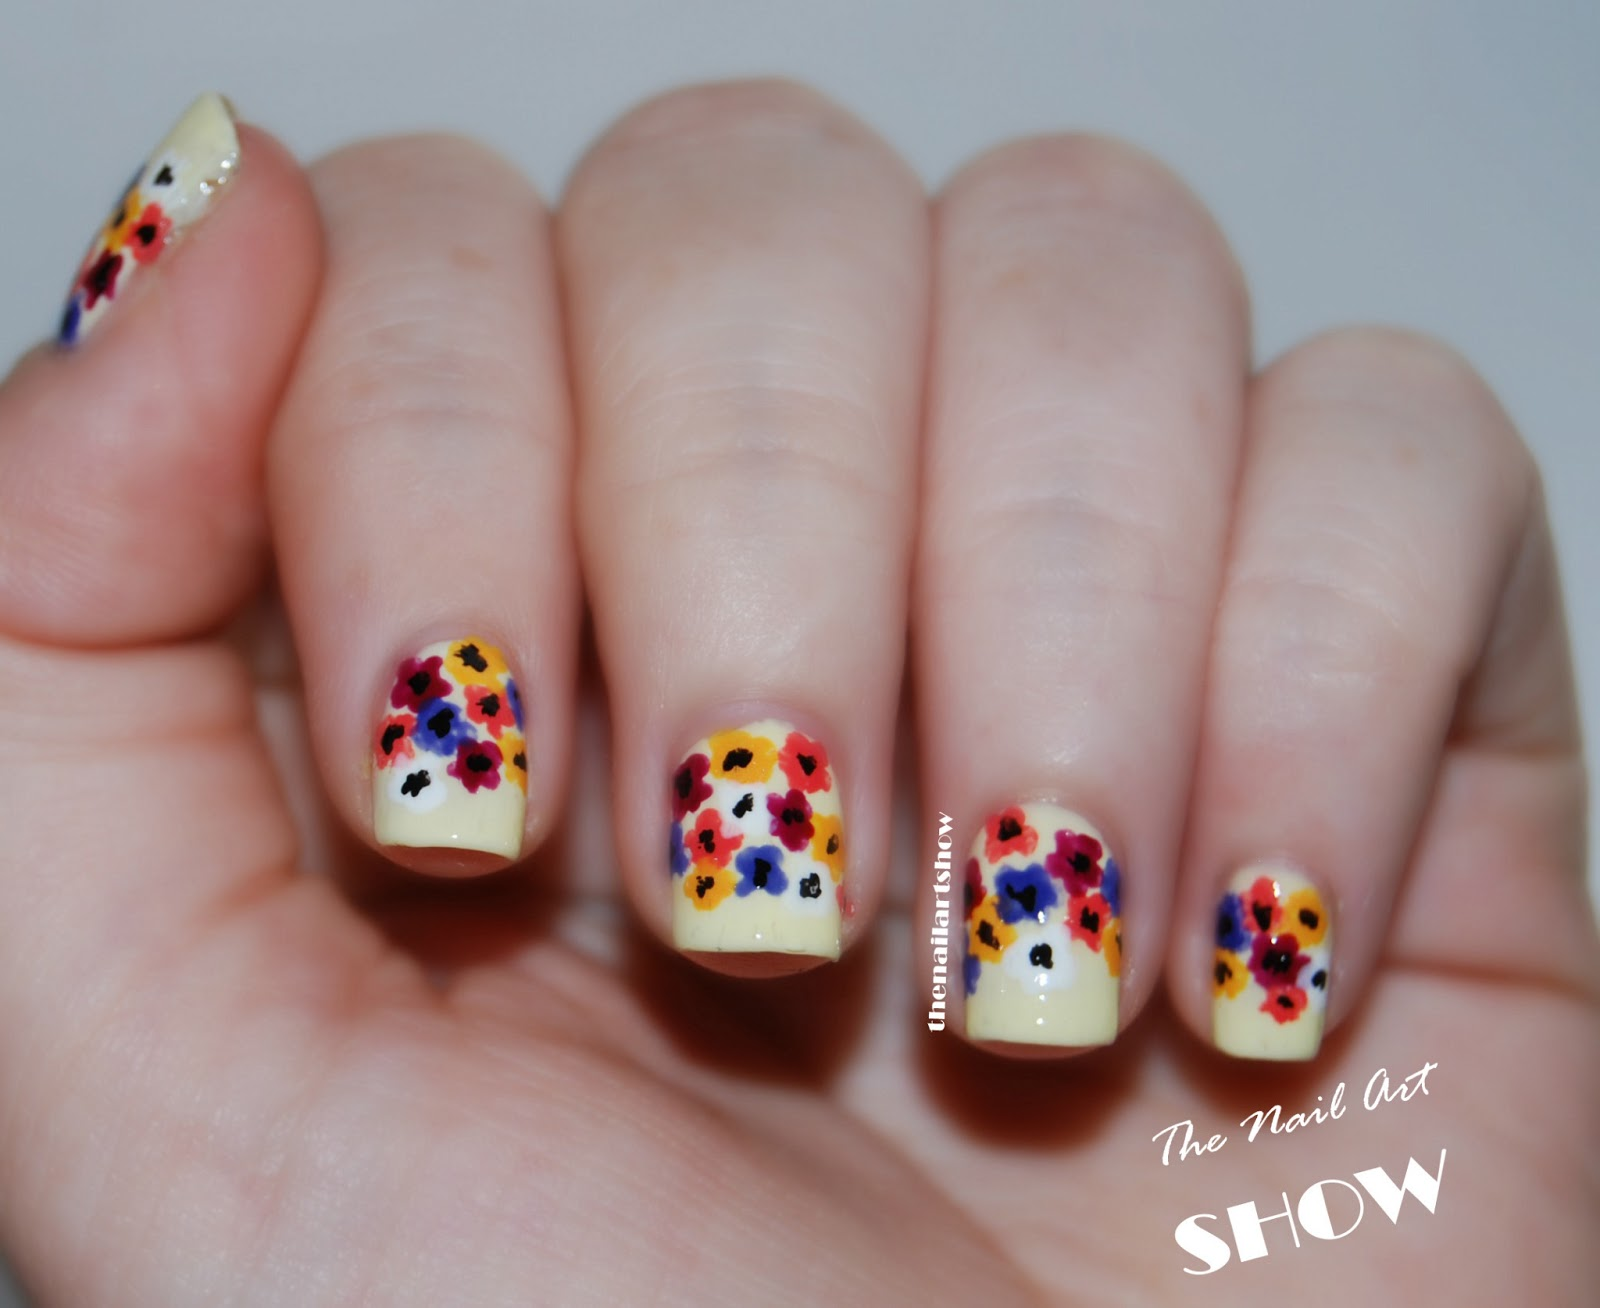 The Nail Art Show: June Nail Art Challenge - Day 4: Flowers